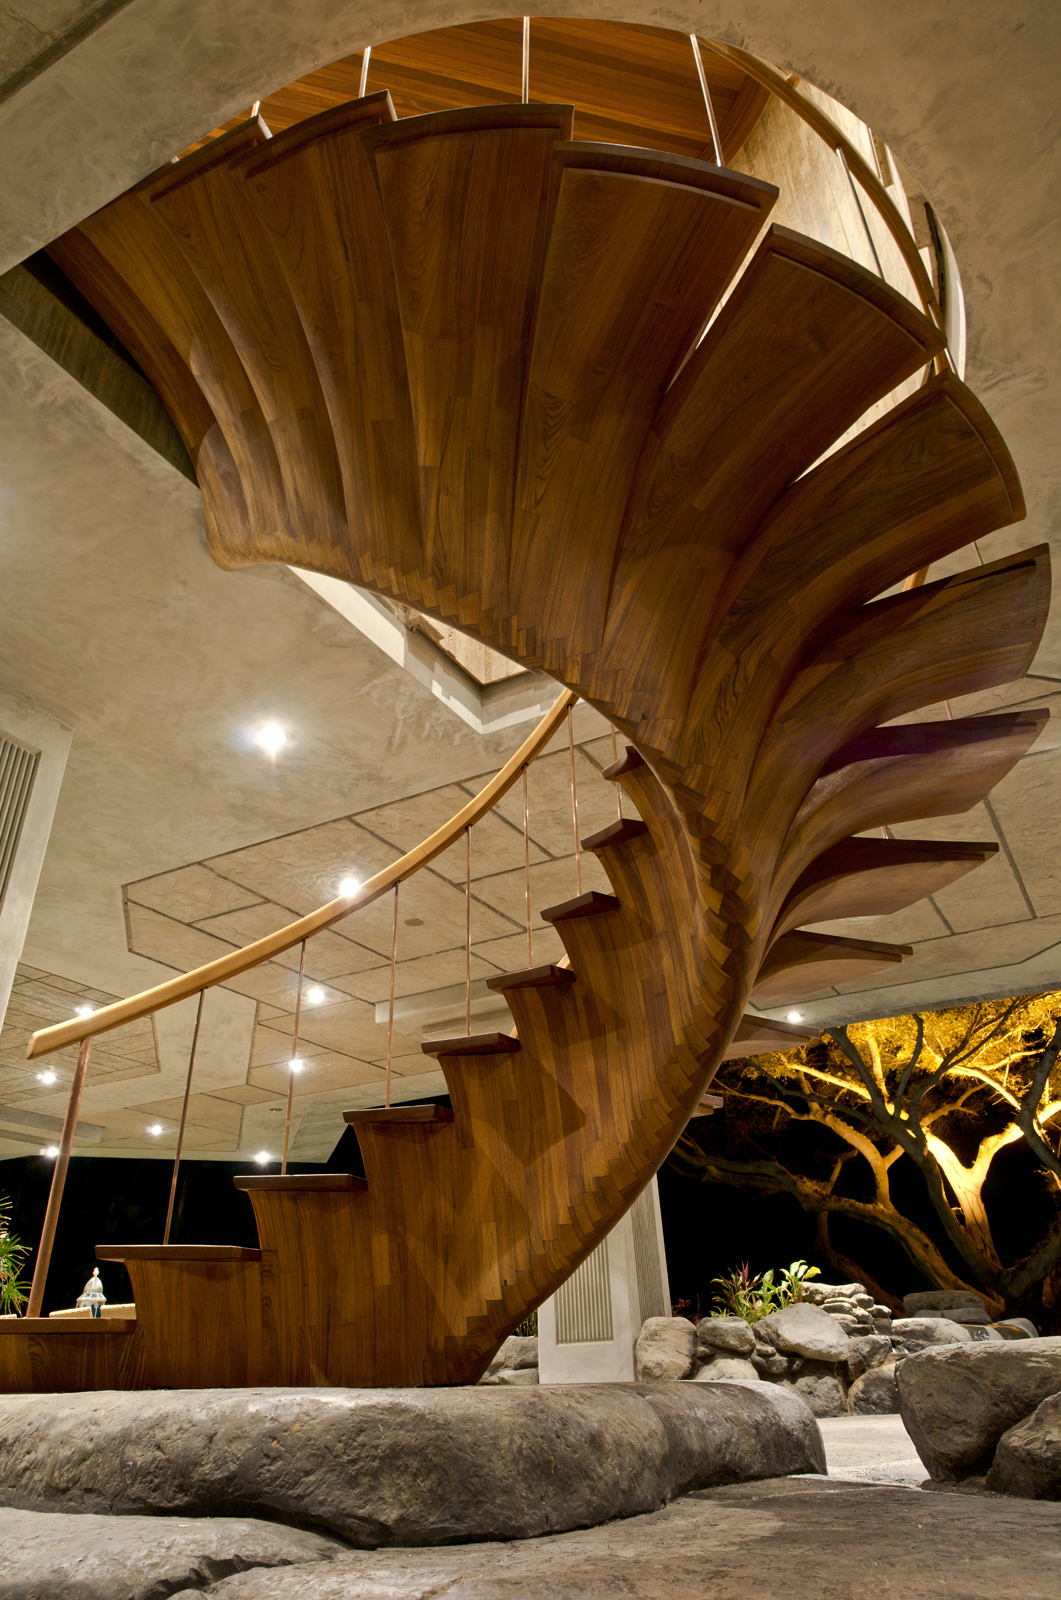 Picture of Inlayed Wood Scales on Spiral Staircase